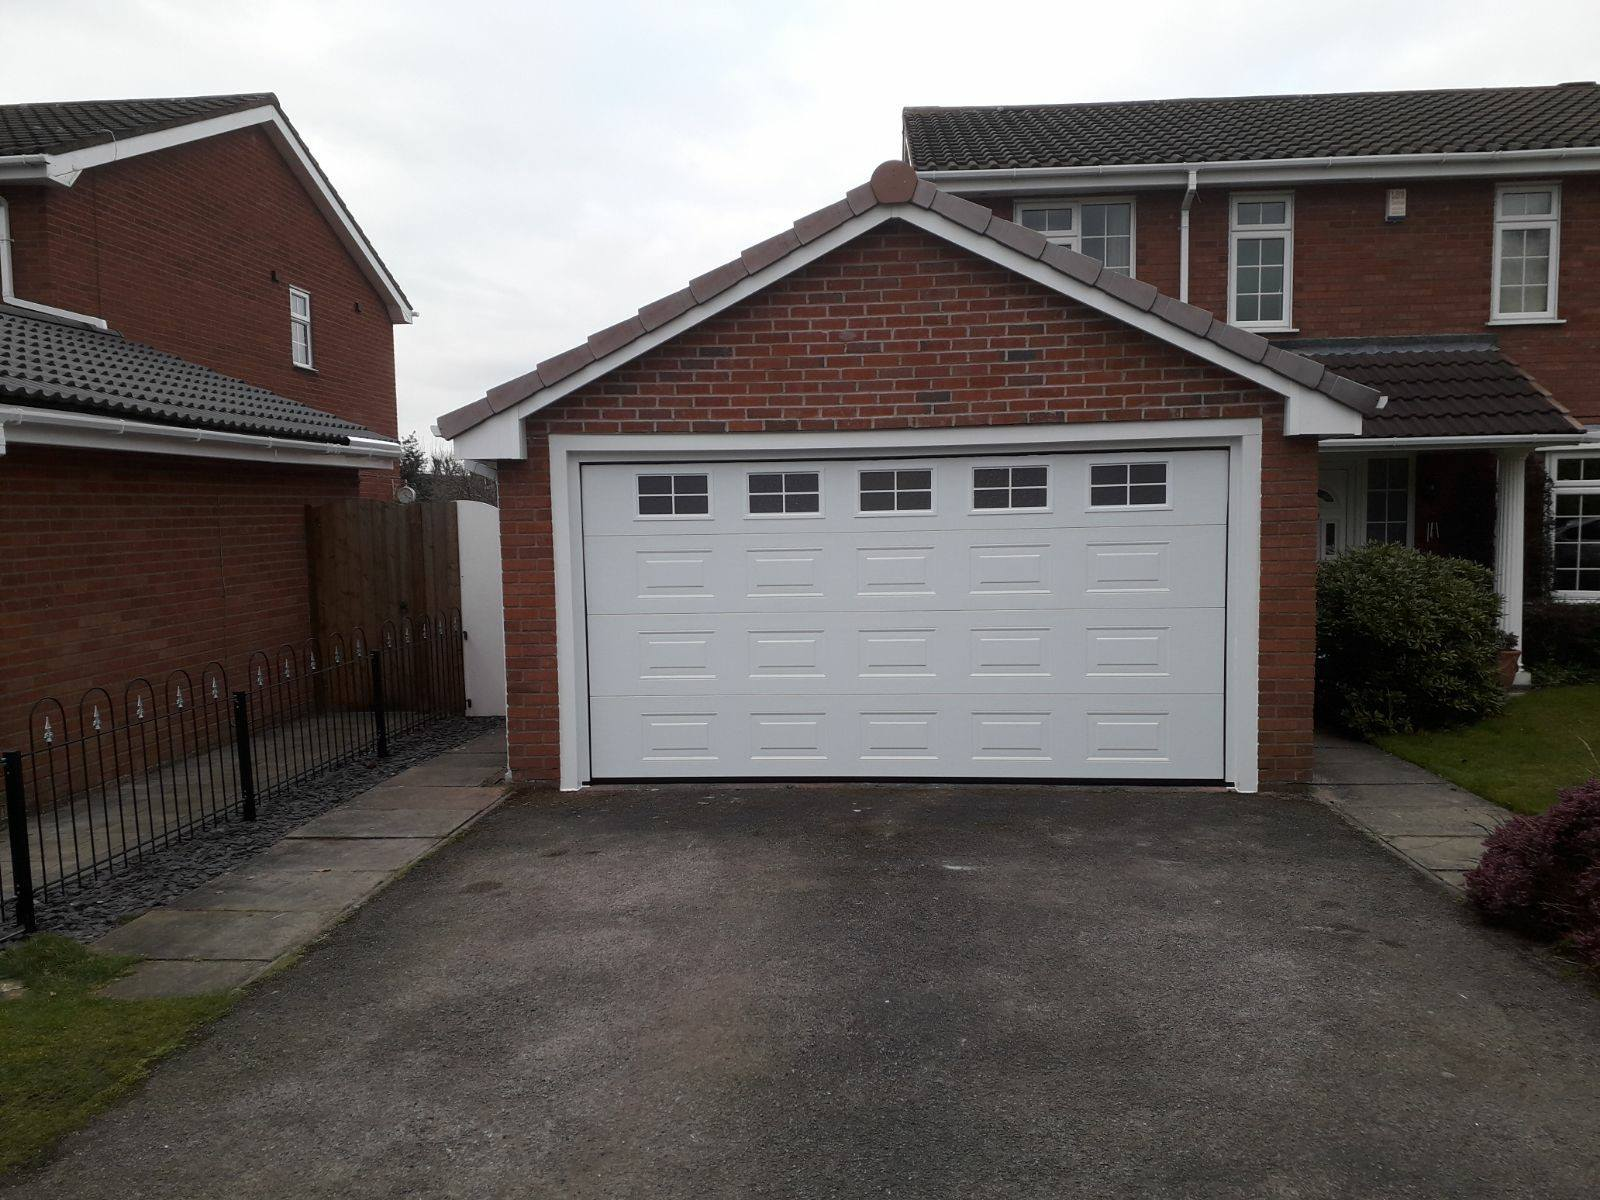 1 x double sectional garage door in a Georgian pattern, powder coated with decorative glazing cross windows. Finished off with a white surround to match